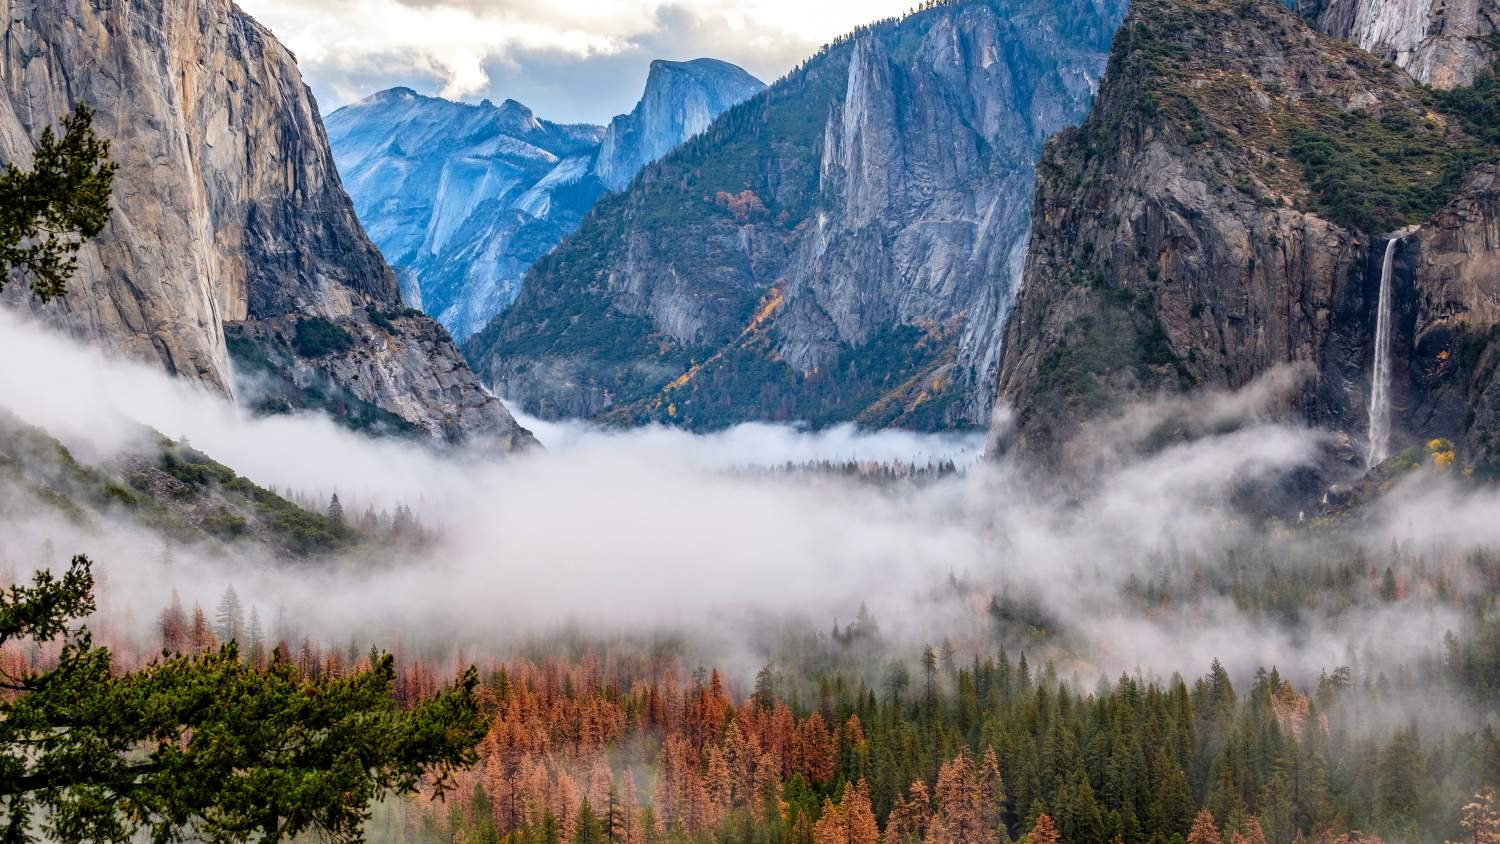 Autumn at Yosemite Valley